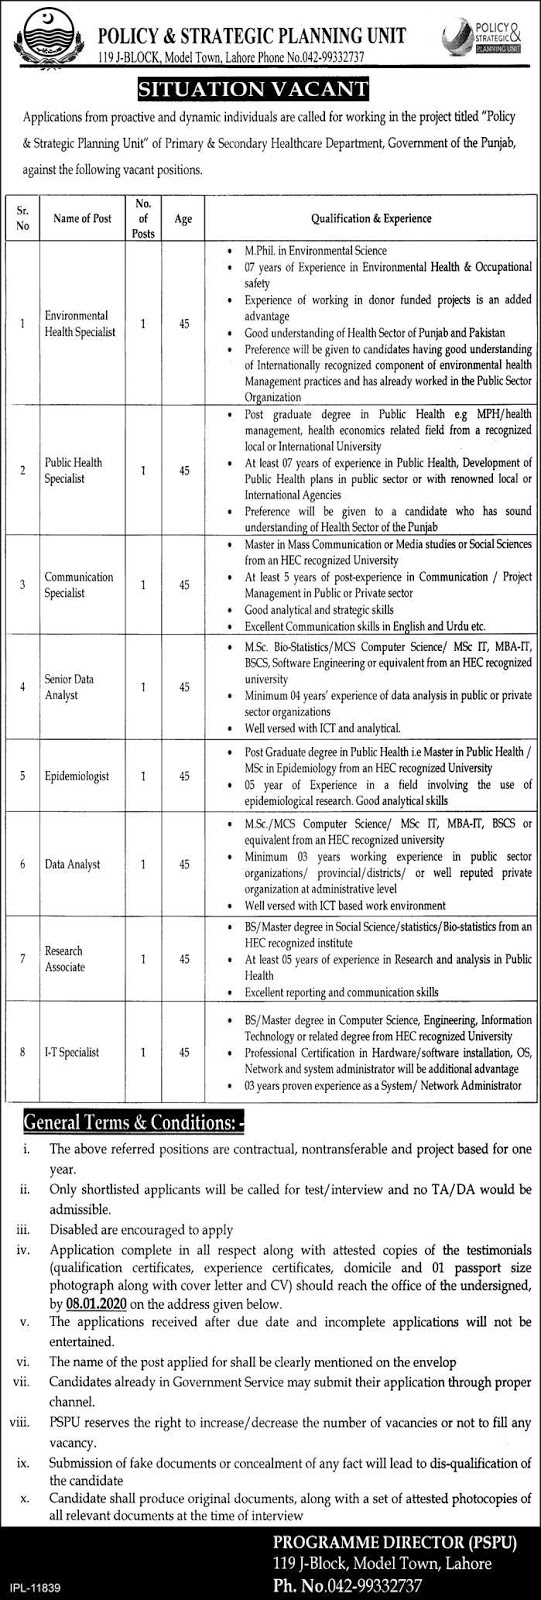 Jobs in Policy and Strategic Planning Unit PSPU 2019